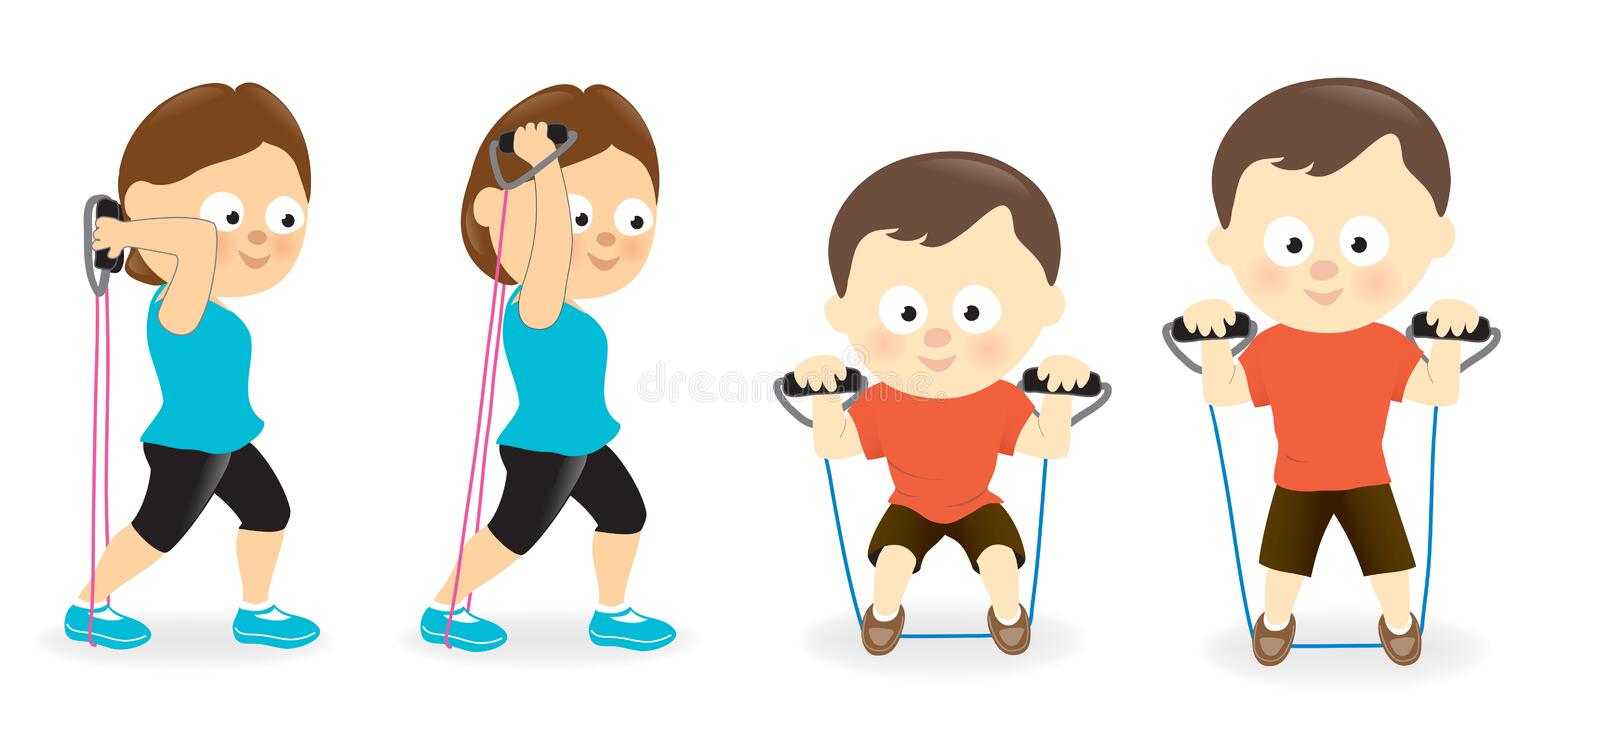 Woman and man exercising with resistance band tubes. Illustration of woman and man exercising with resistance tubes stock illustration